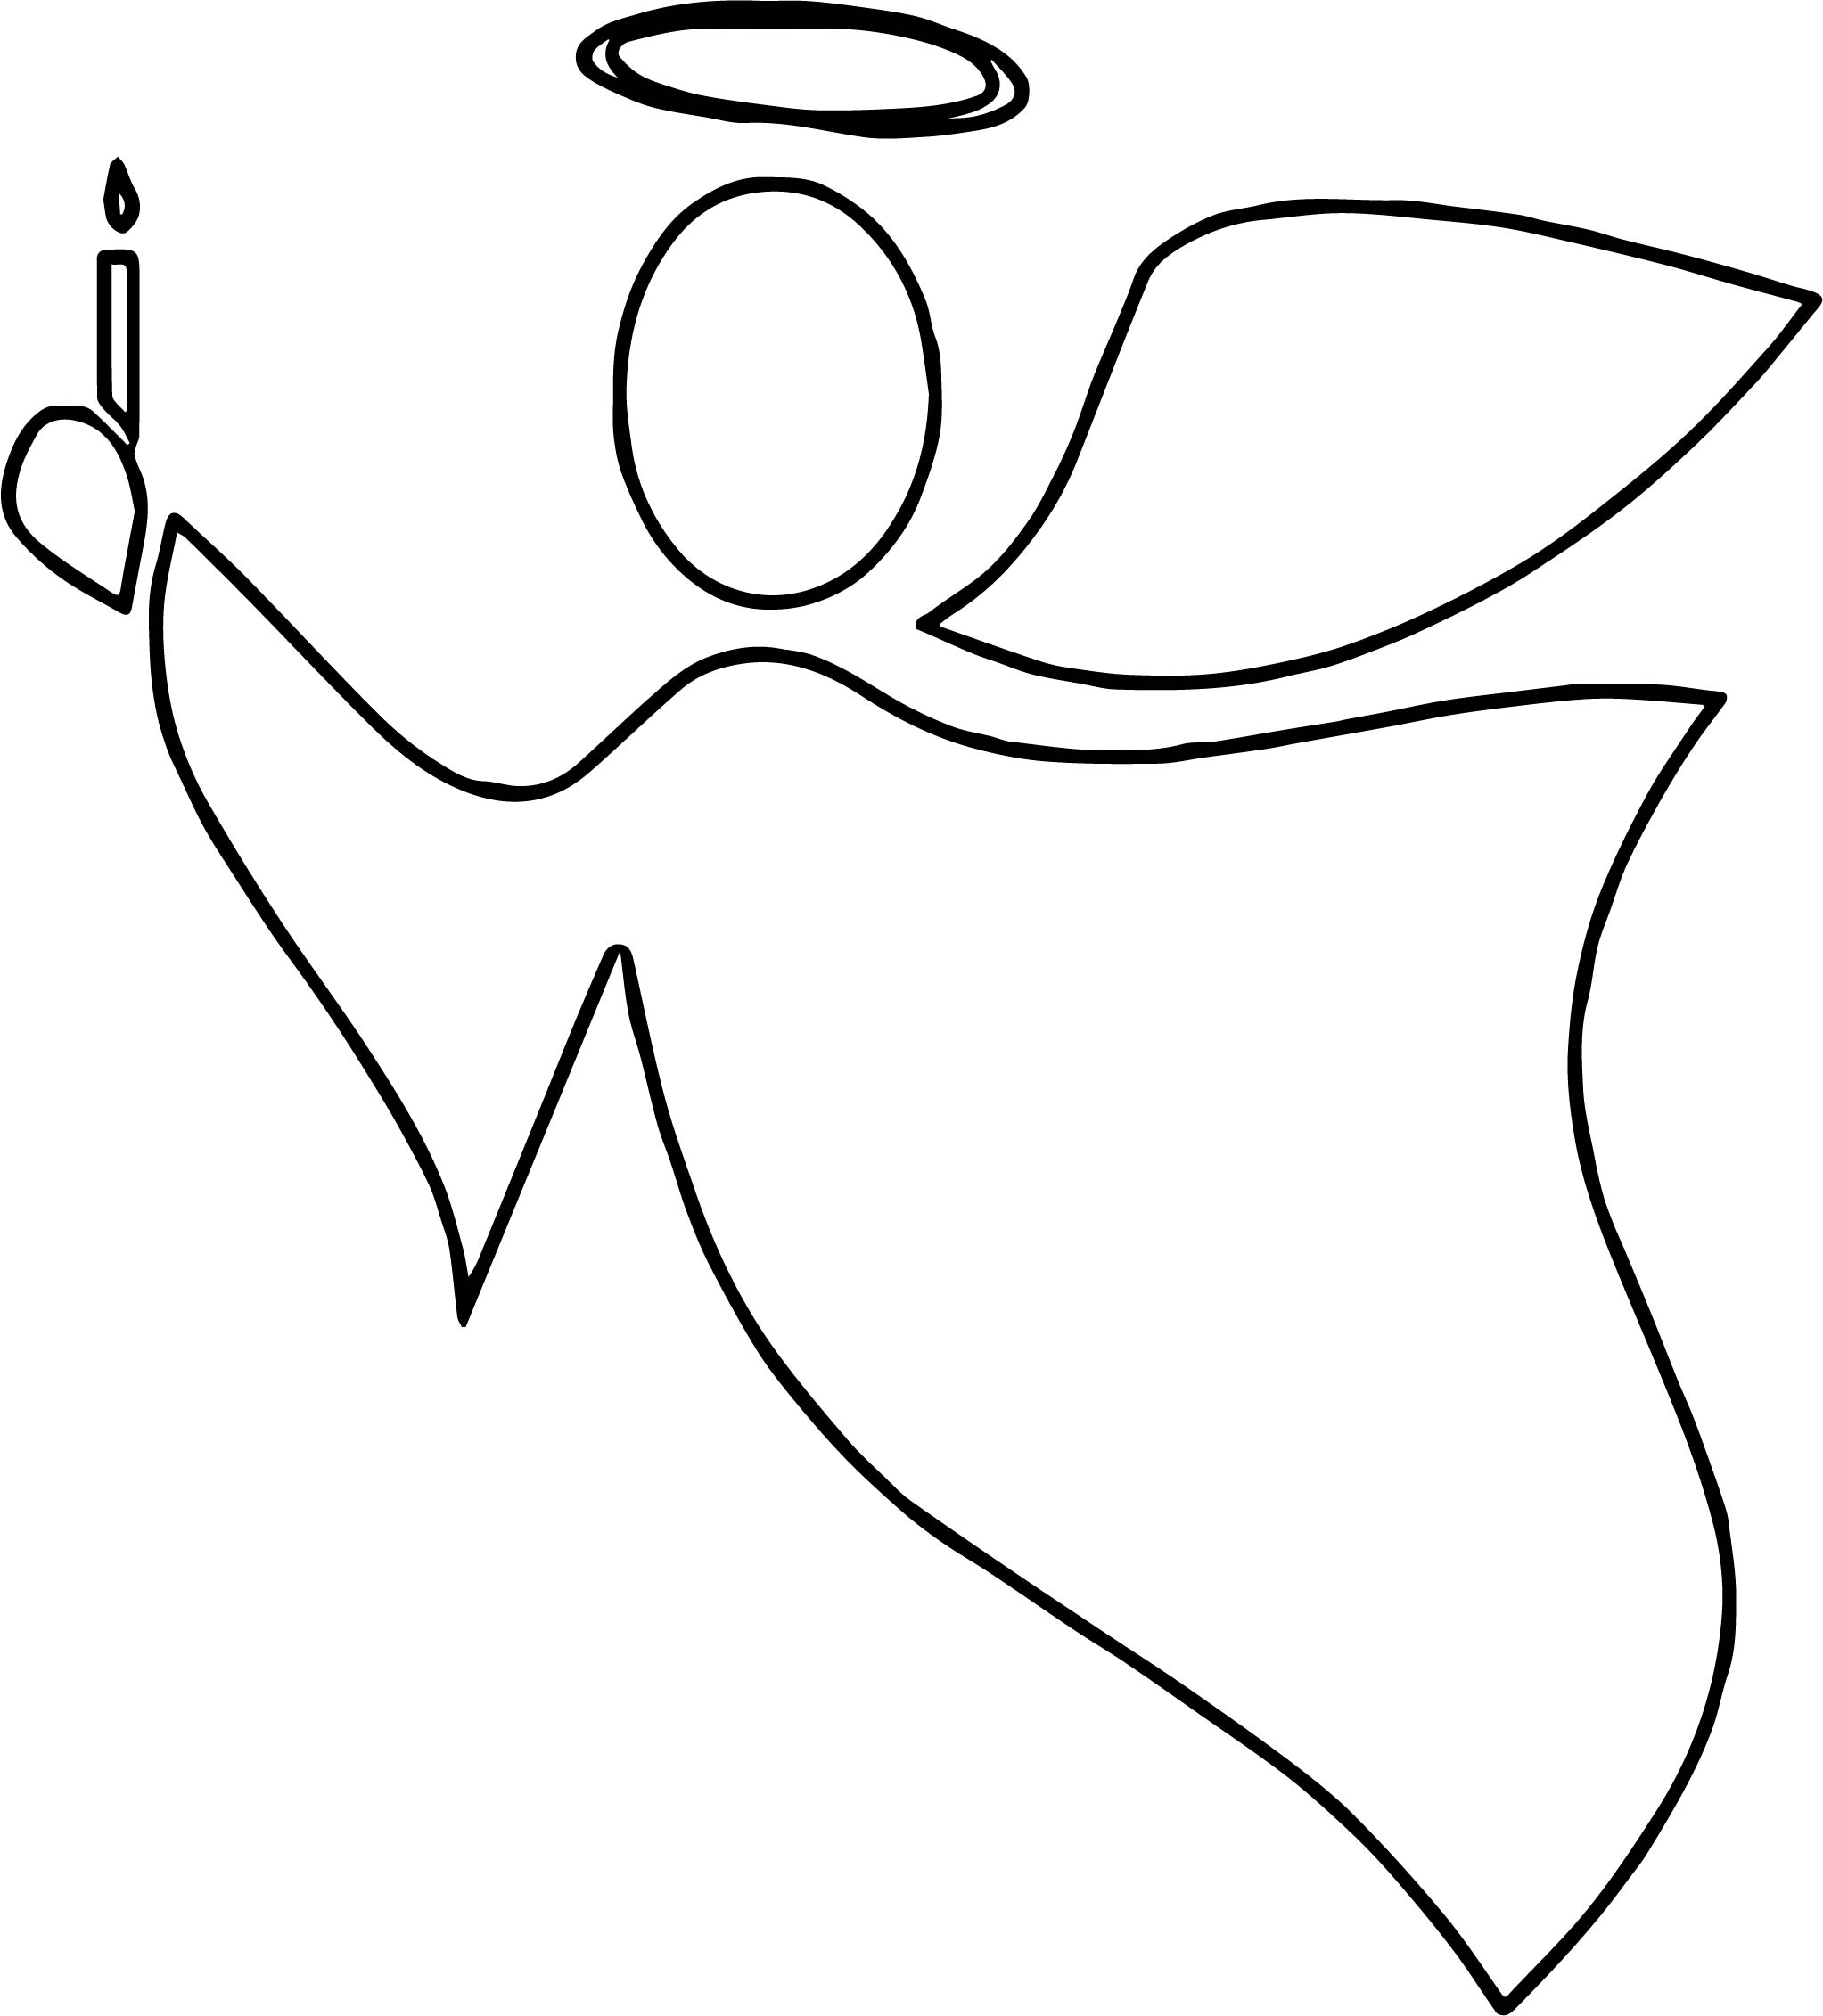 2045x2262 Angel Outline Candle Coloring Page Wecoloringpage